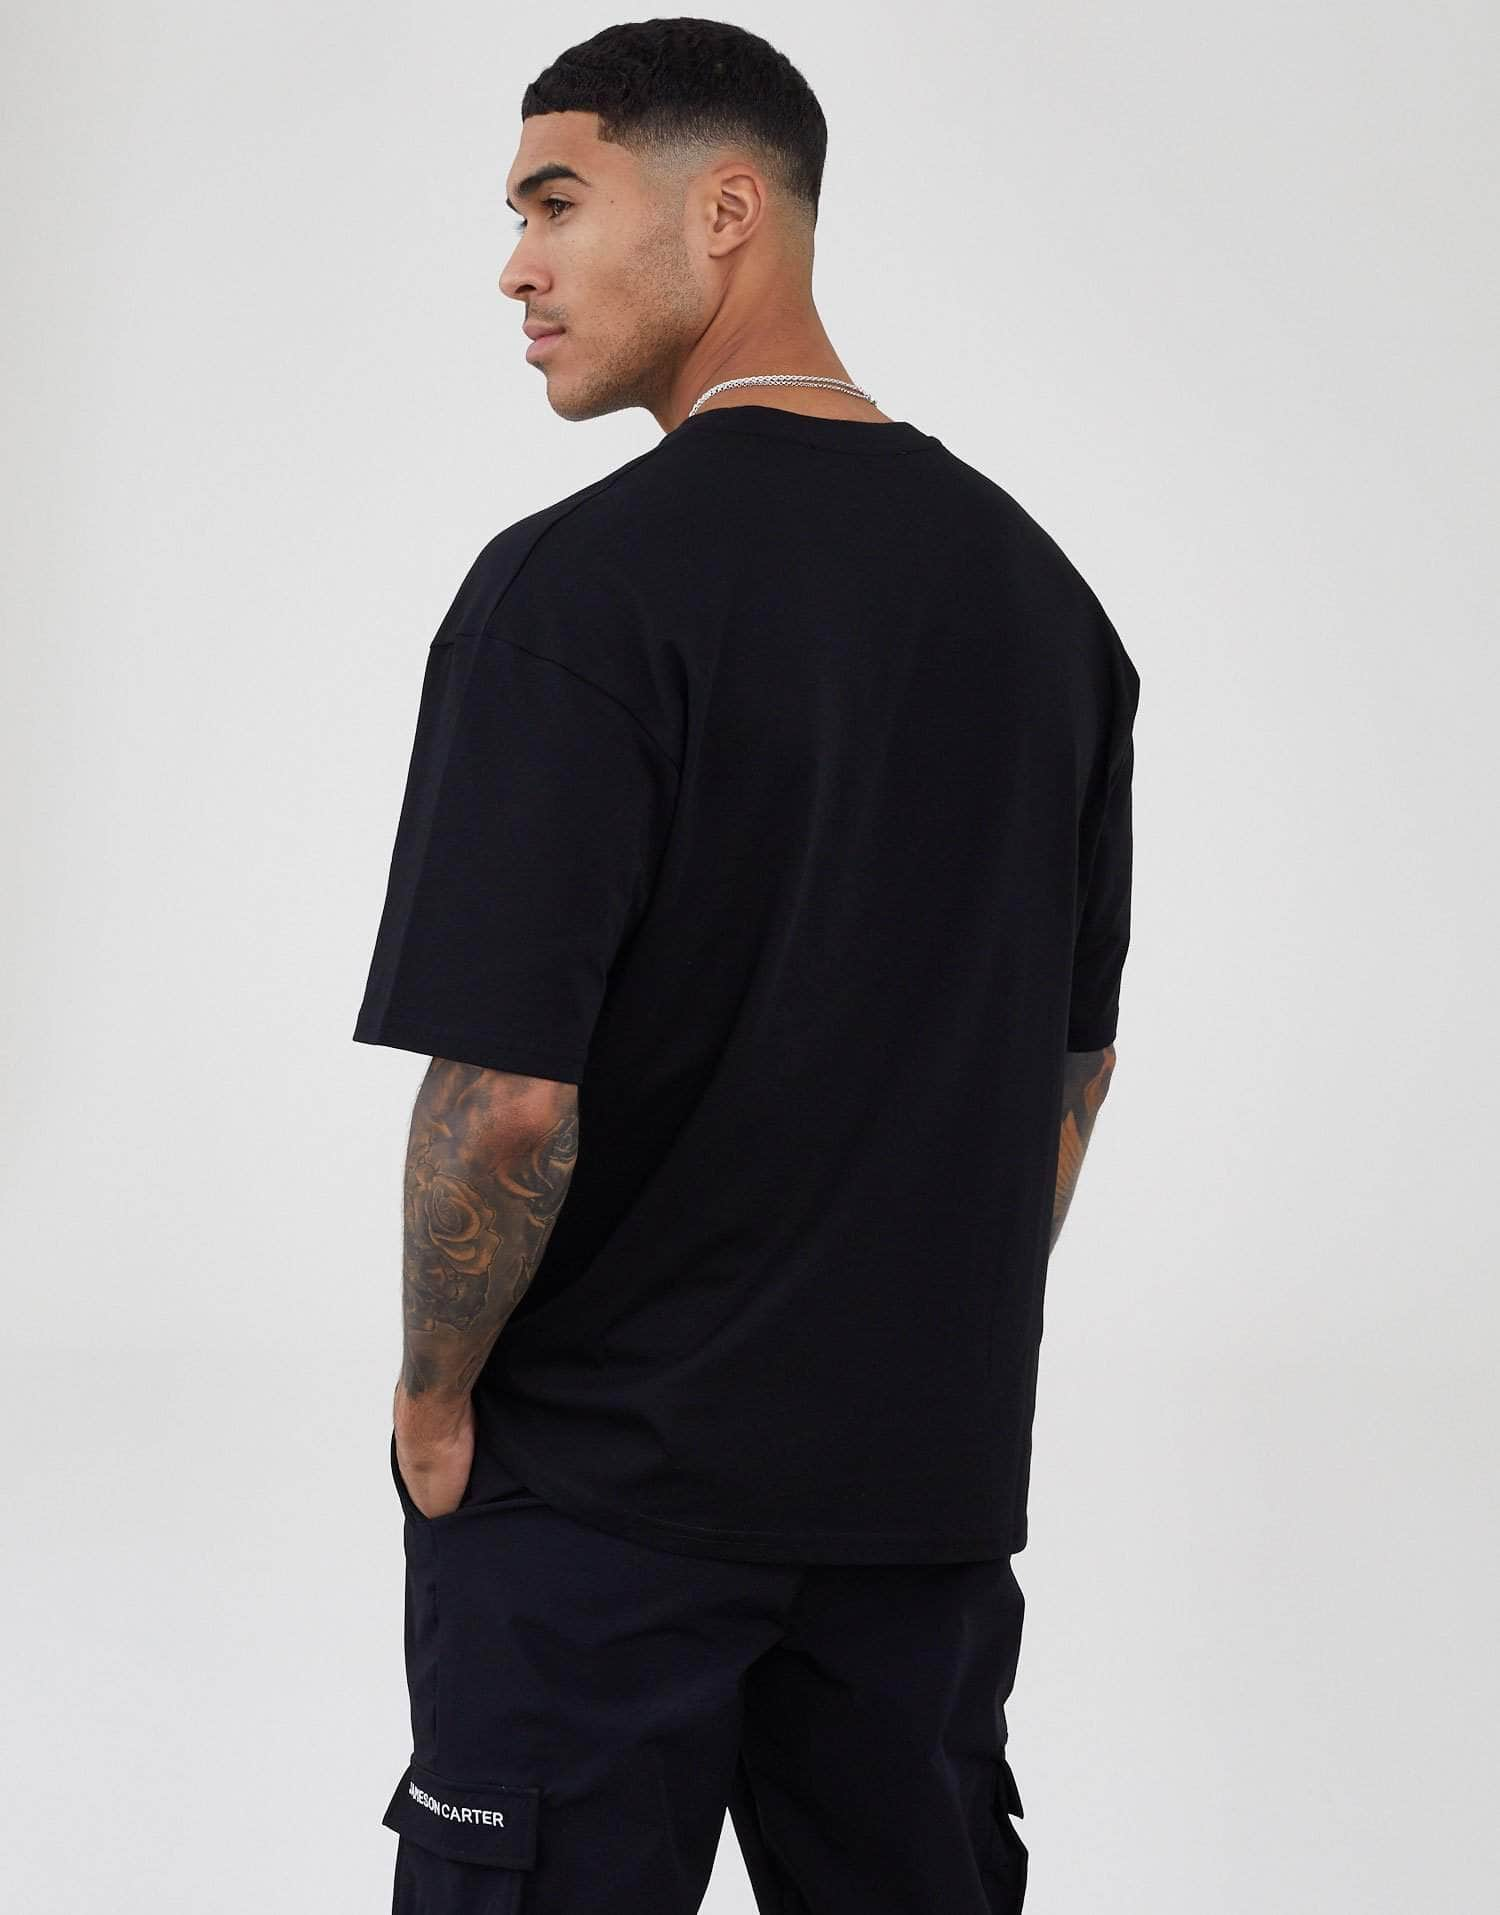 Jameson Carter T-Shirts, not-sale Harris Oversized T-Shirt - Black